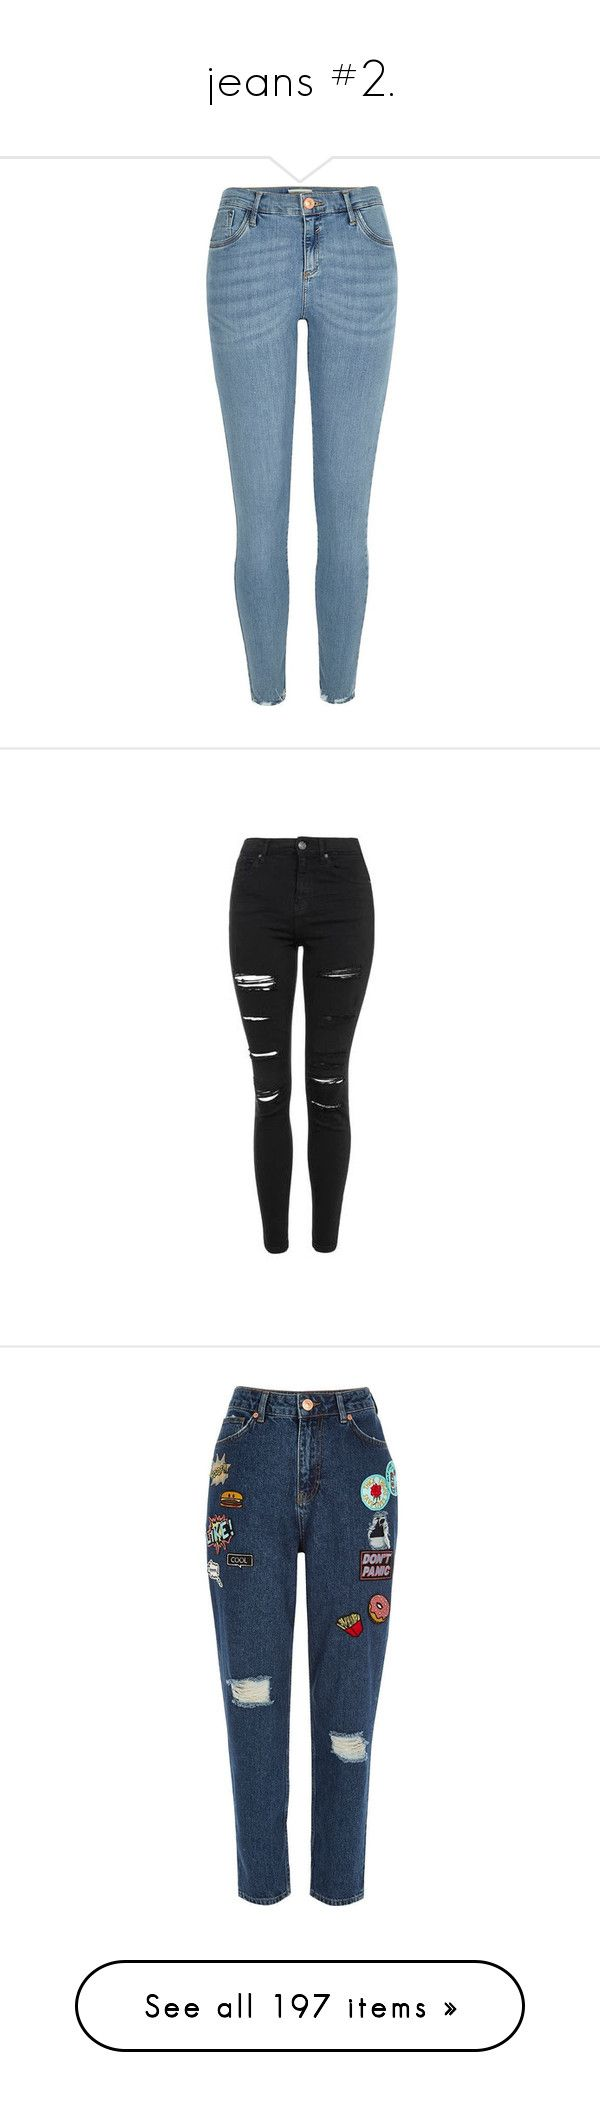 """""""jeans #2."""" by takenforfashion ❤ liked on Polyvore featuring jeans, pants, bottoms, blue, sale, zipper skinny jeans, super skinny jeans, tall jeans, zipper pocket jeans and blue skinny jeans"""